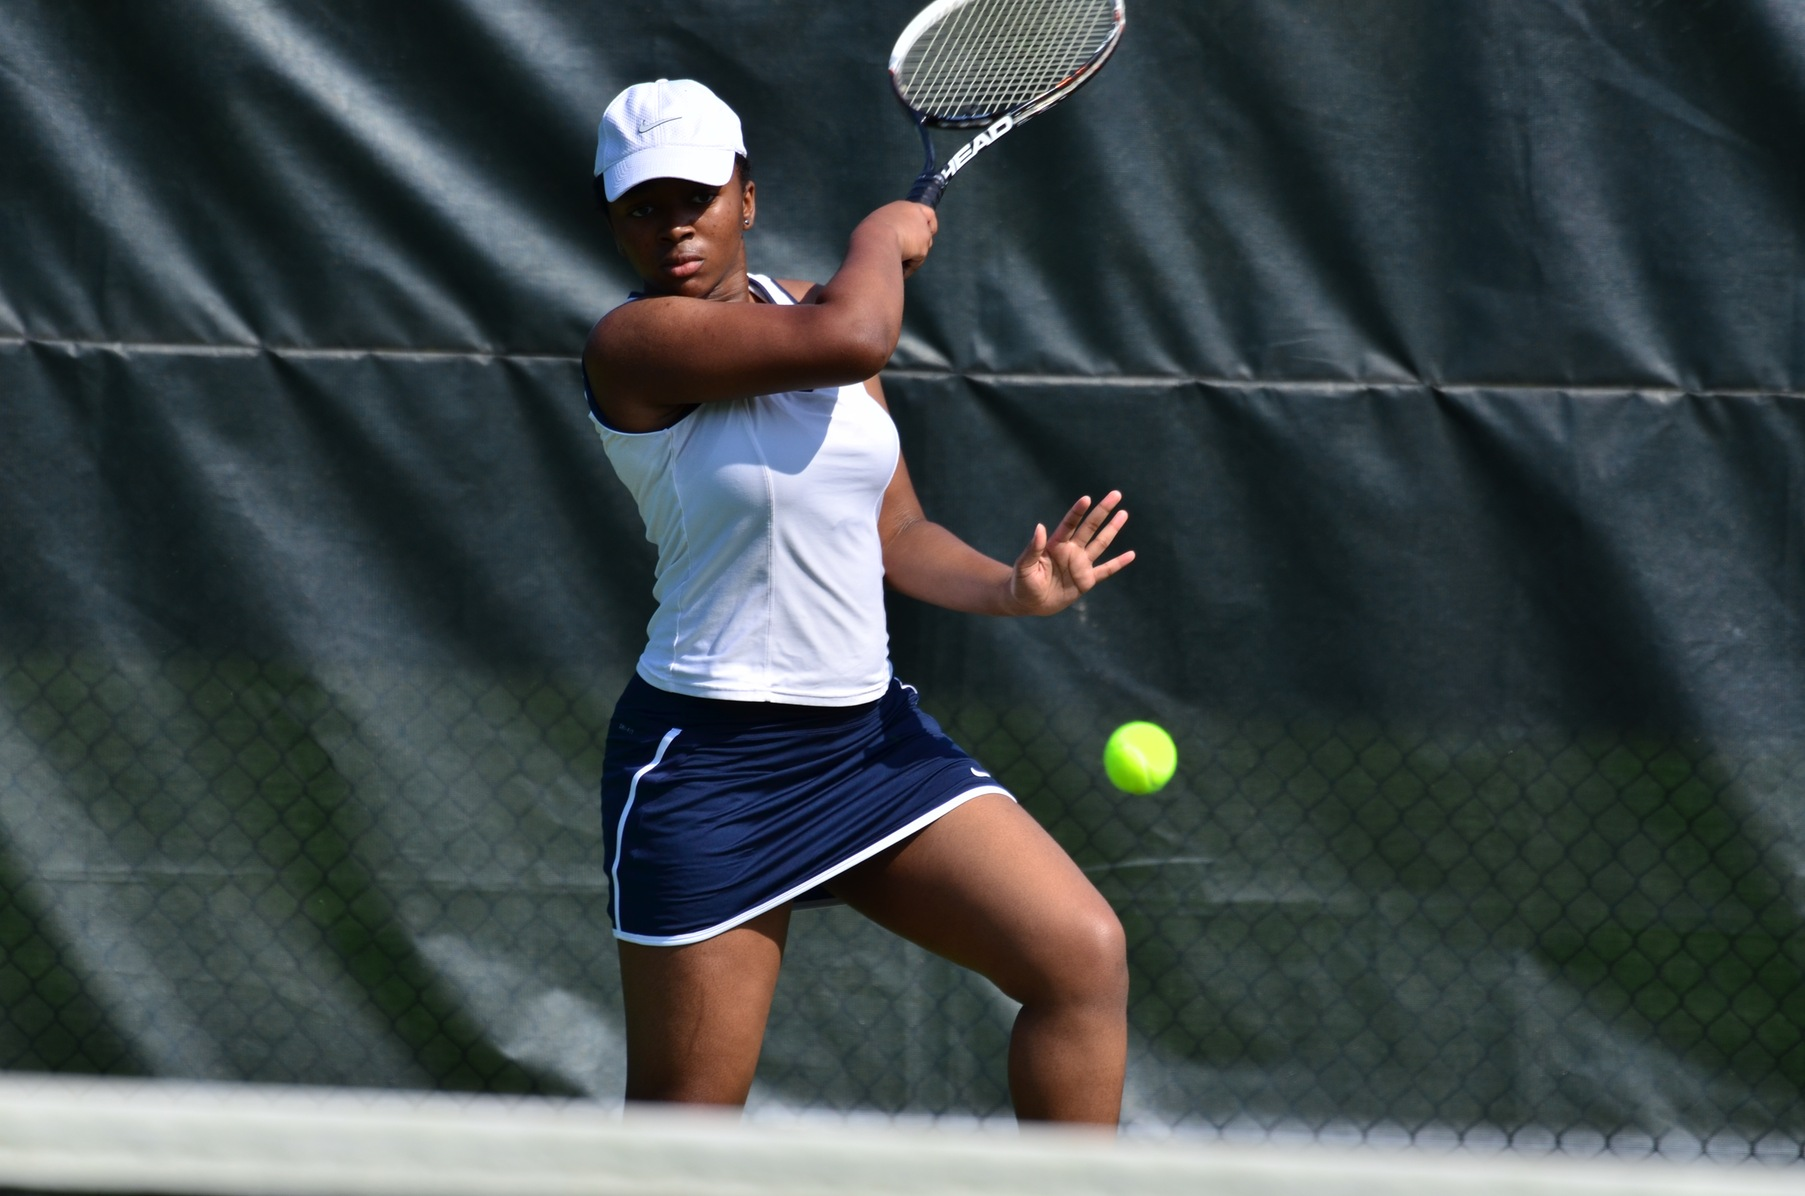 Pitt-Bradford Defeats Women's Tennis in AMCC Action